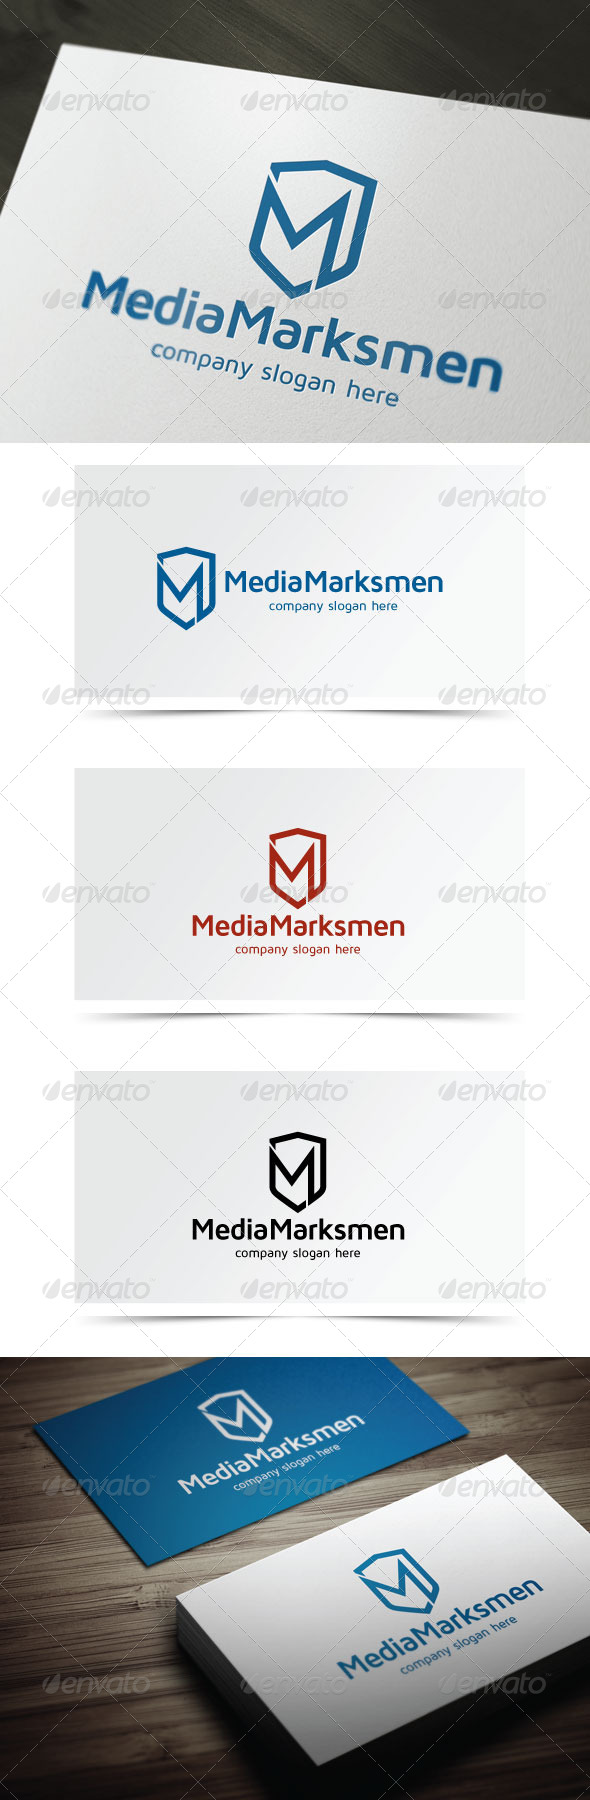 GraphicRiver Media Marksmen 5589736